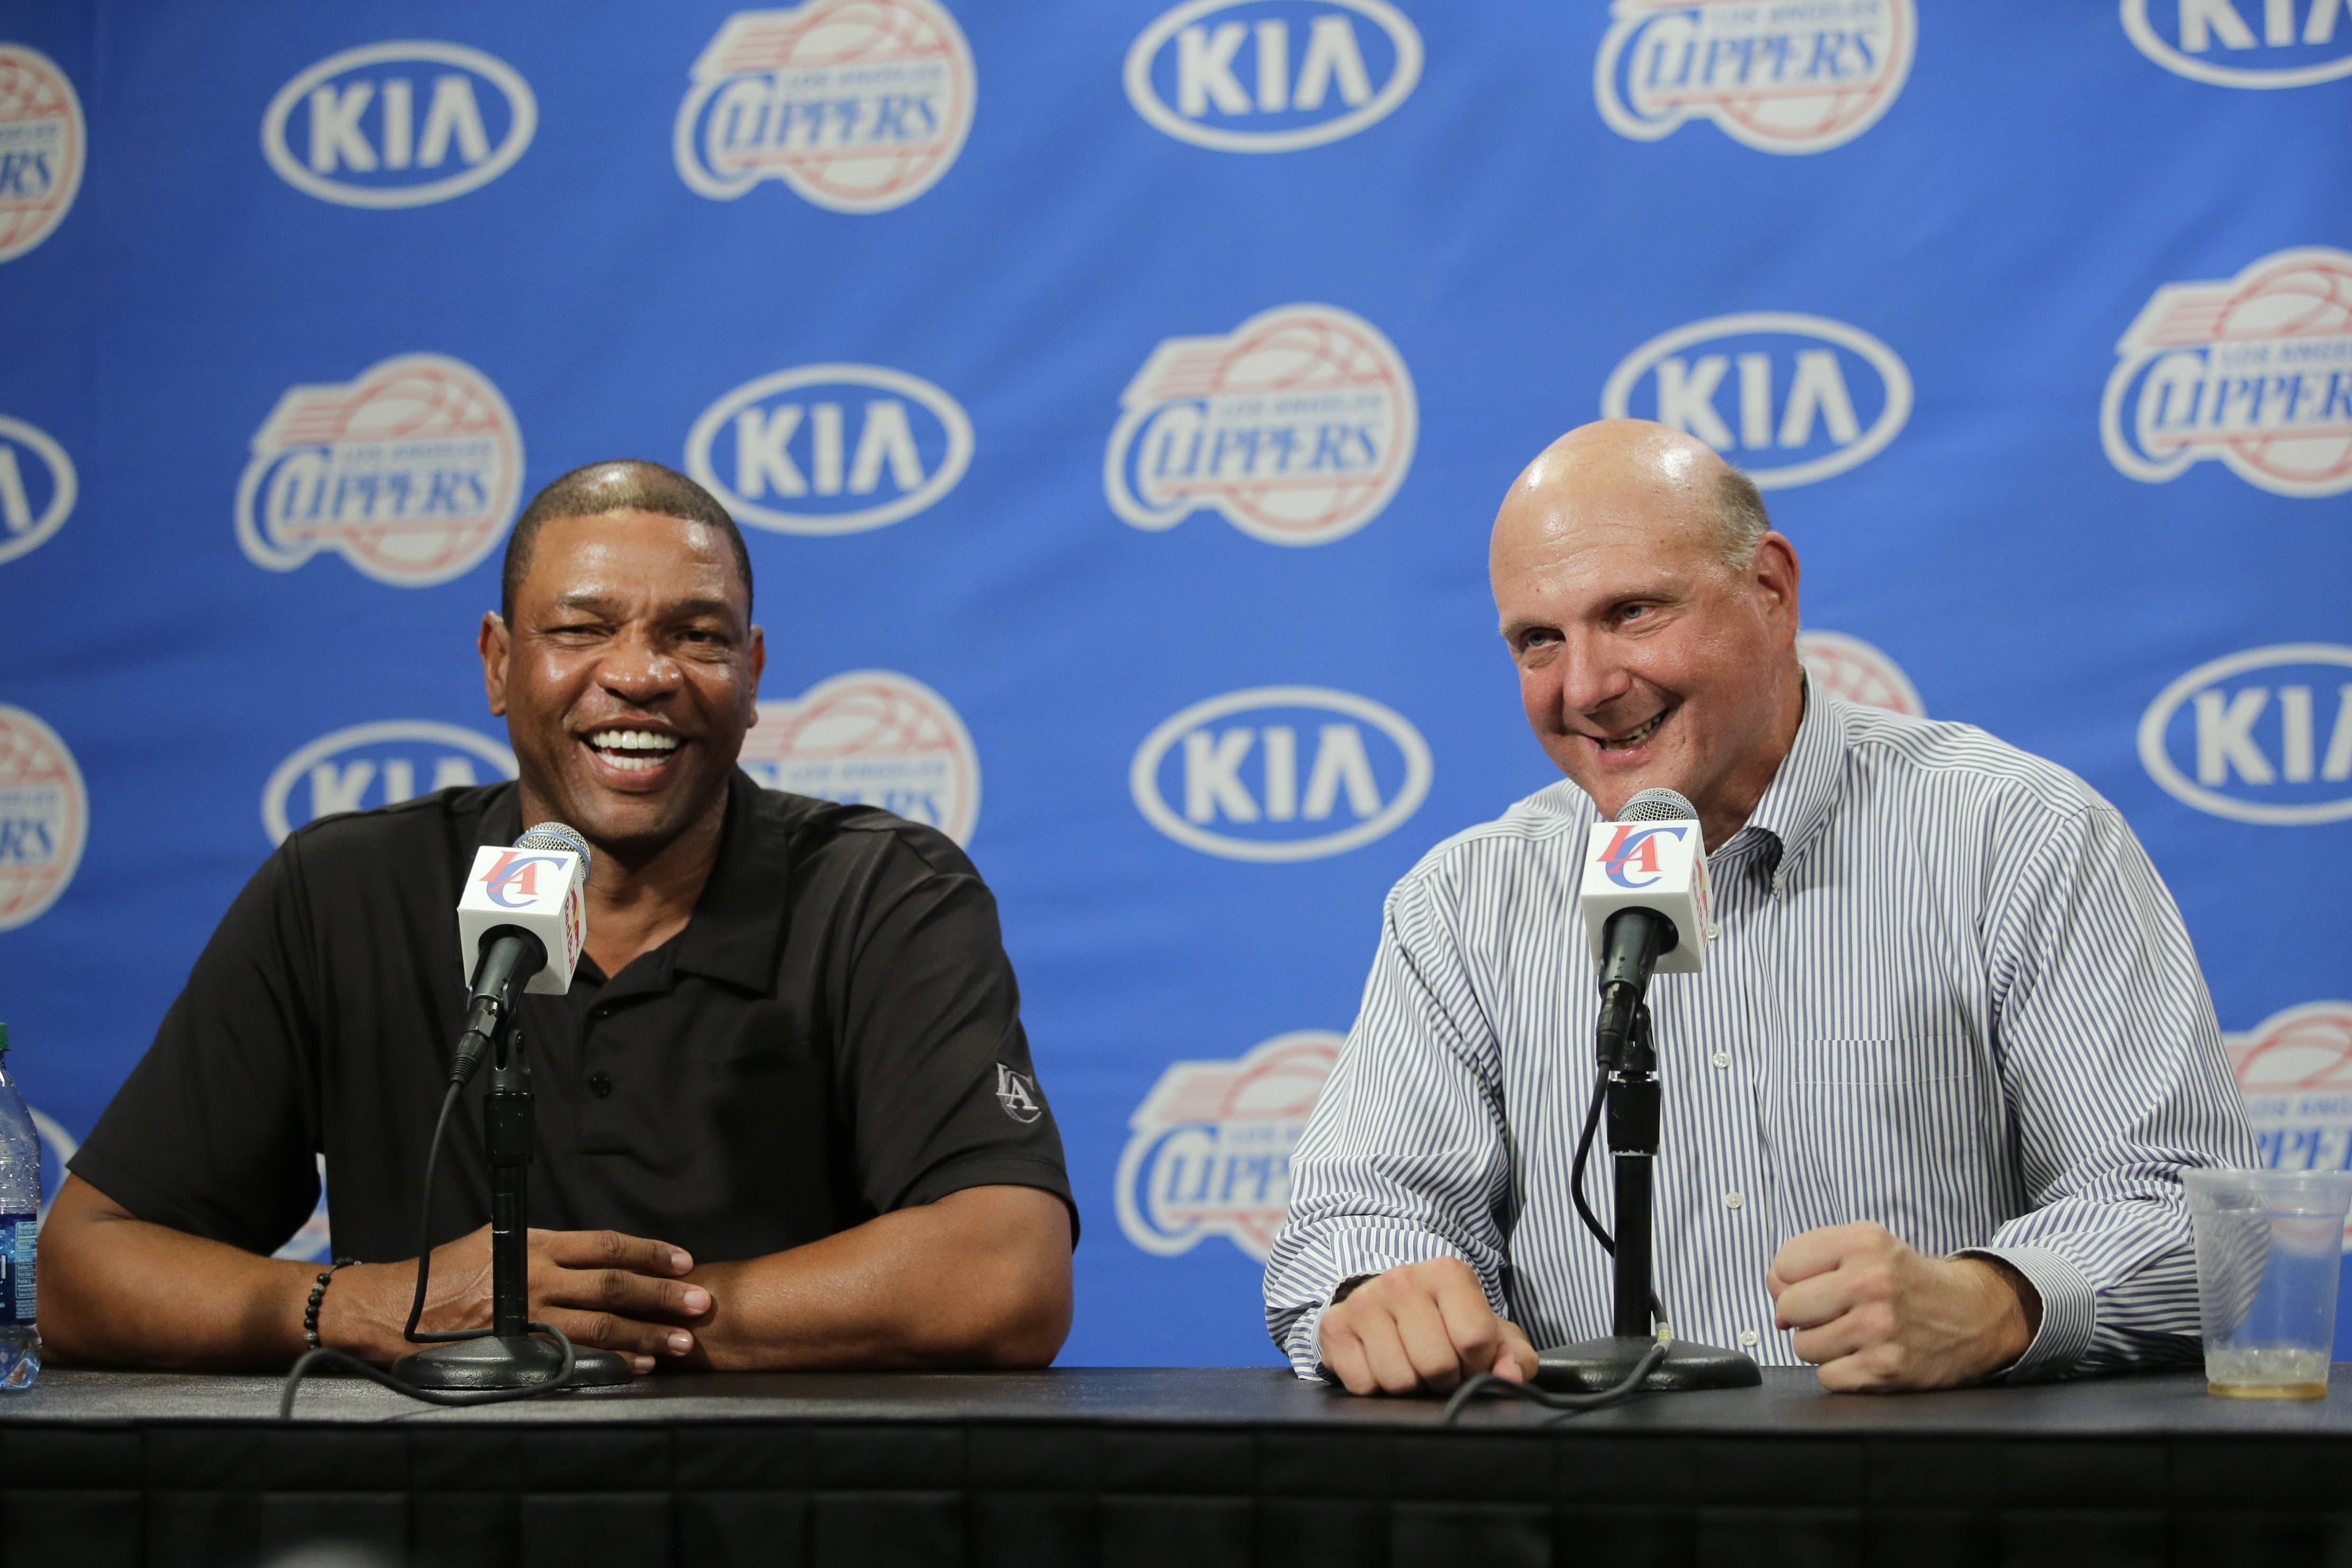 Doc Rivers is staying with the Los Angeles Clippers for another five years.In Steve Ballmer's first big move since taking over as the new owner, he gave Rivers a contract extension through the 2018-19 season.